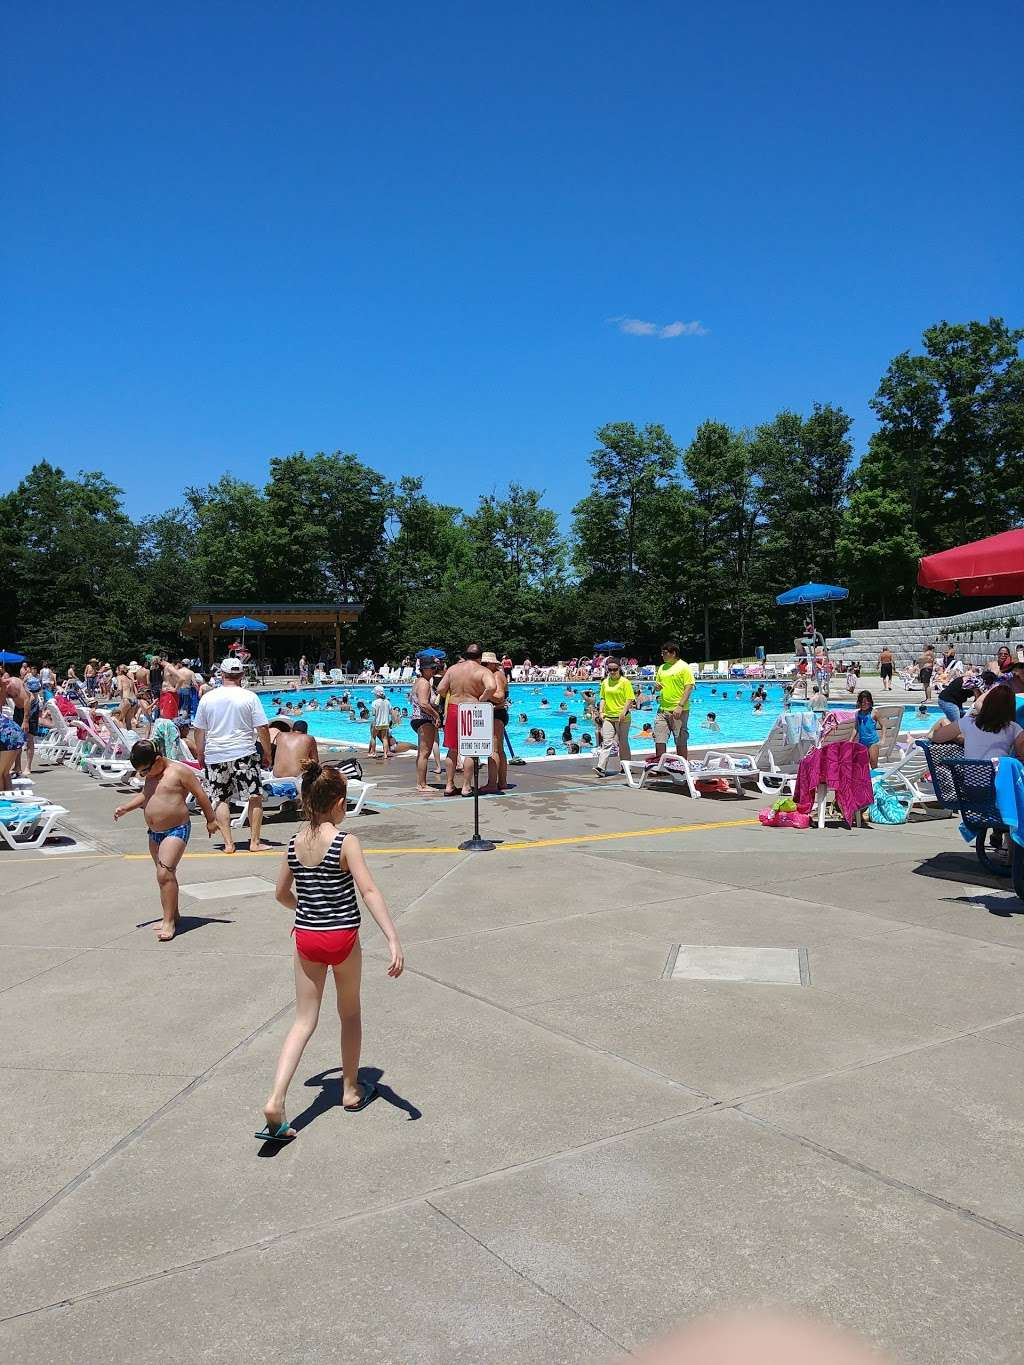 Barca Pool Complex - Eagle Lake - park  | Photo 6 of 10 | Address: Covington Township, PA 18424, USA